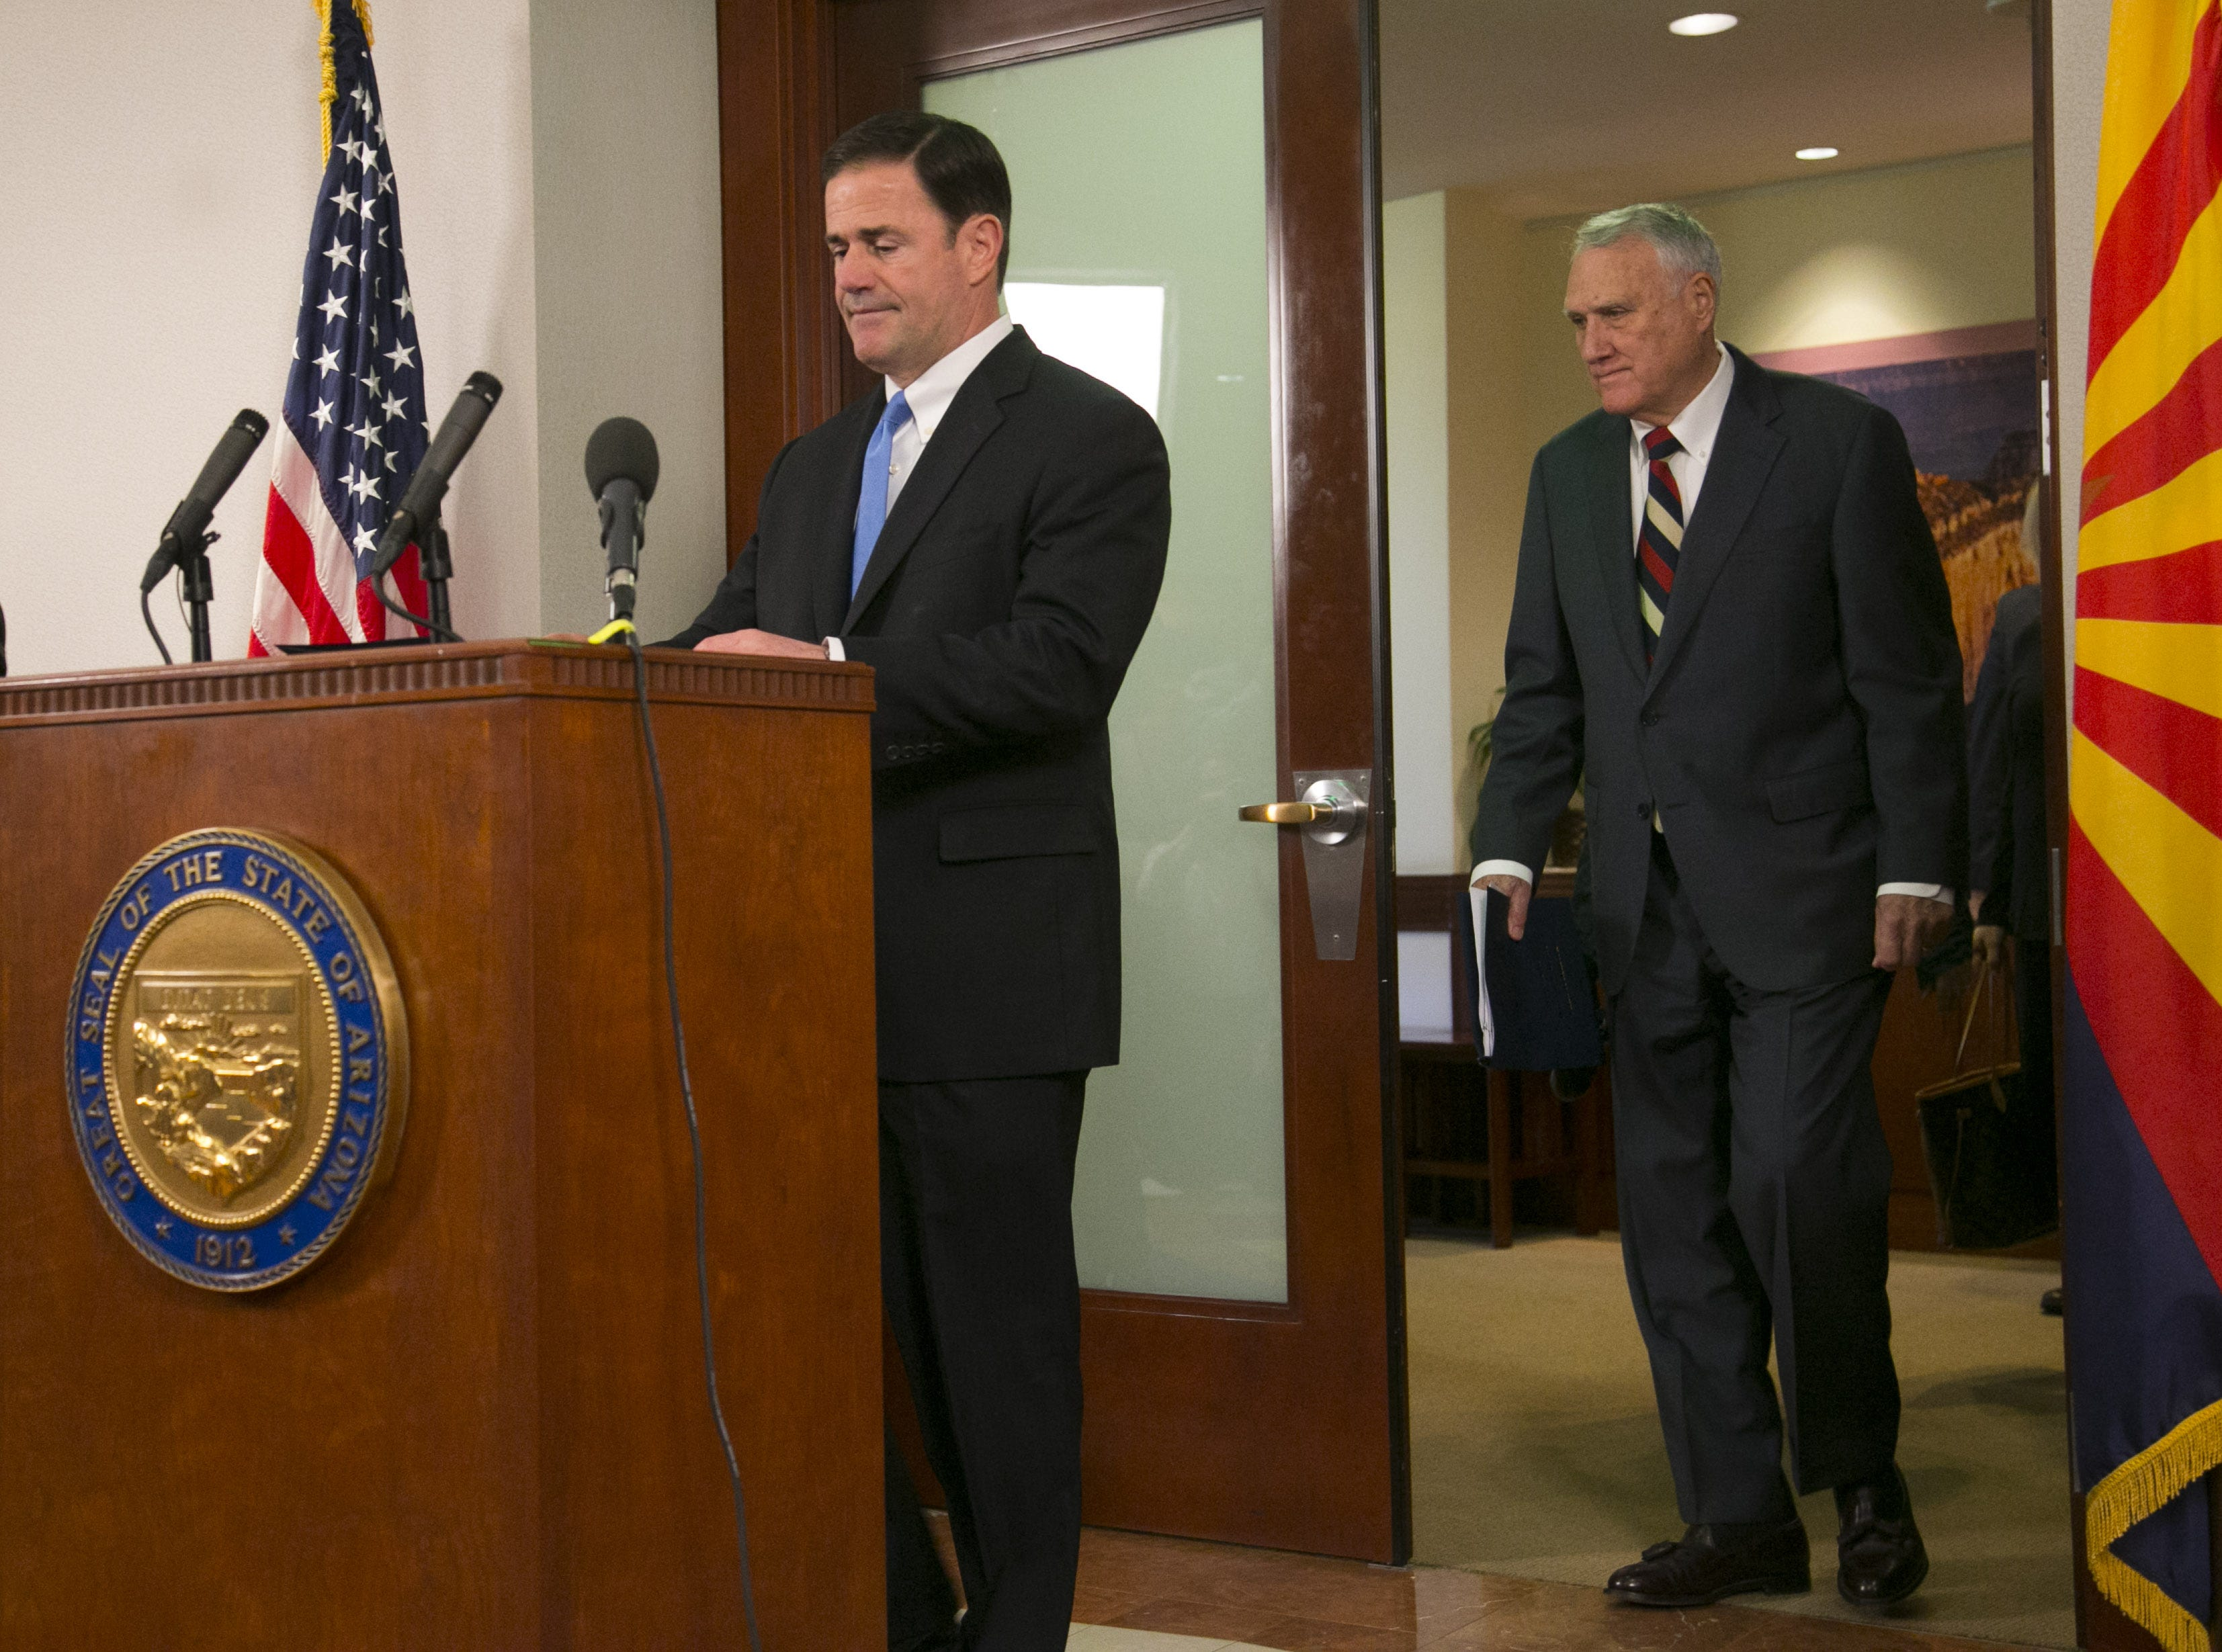 Gov. Doug Ducey prepares to speak to the press on Sept. 4, 2018, about the appointment of former U.S. Sen. Jon Kyl to the seat of the late Sen. John McCain, who died Aug. 25.